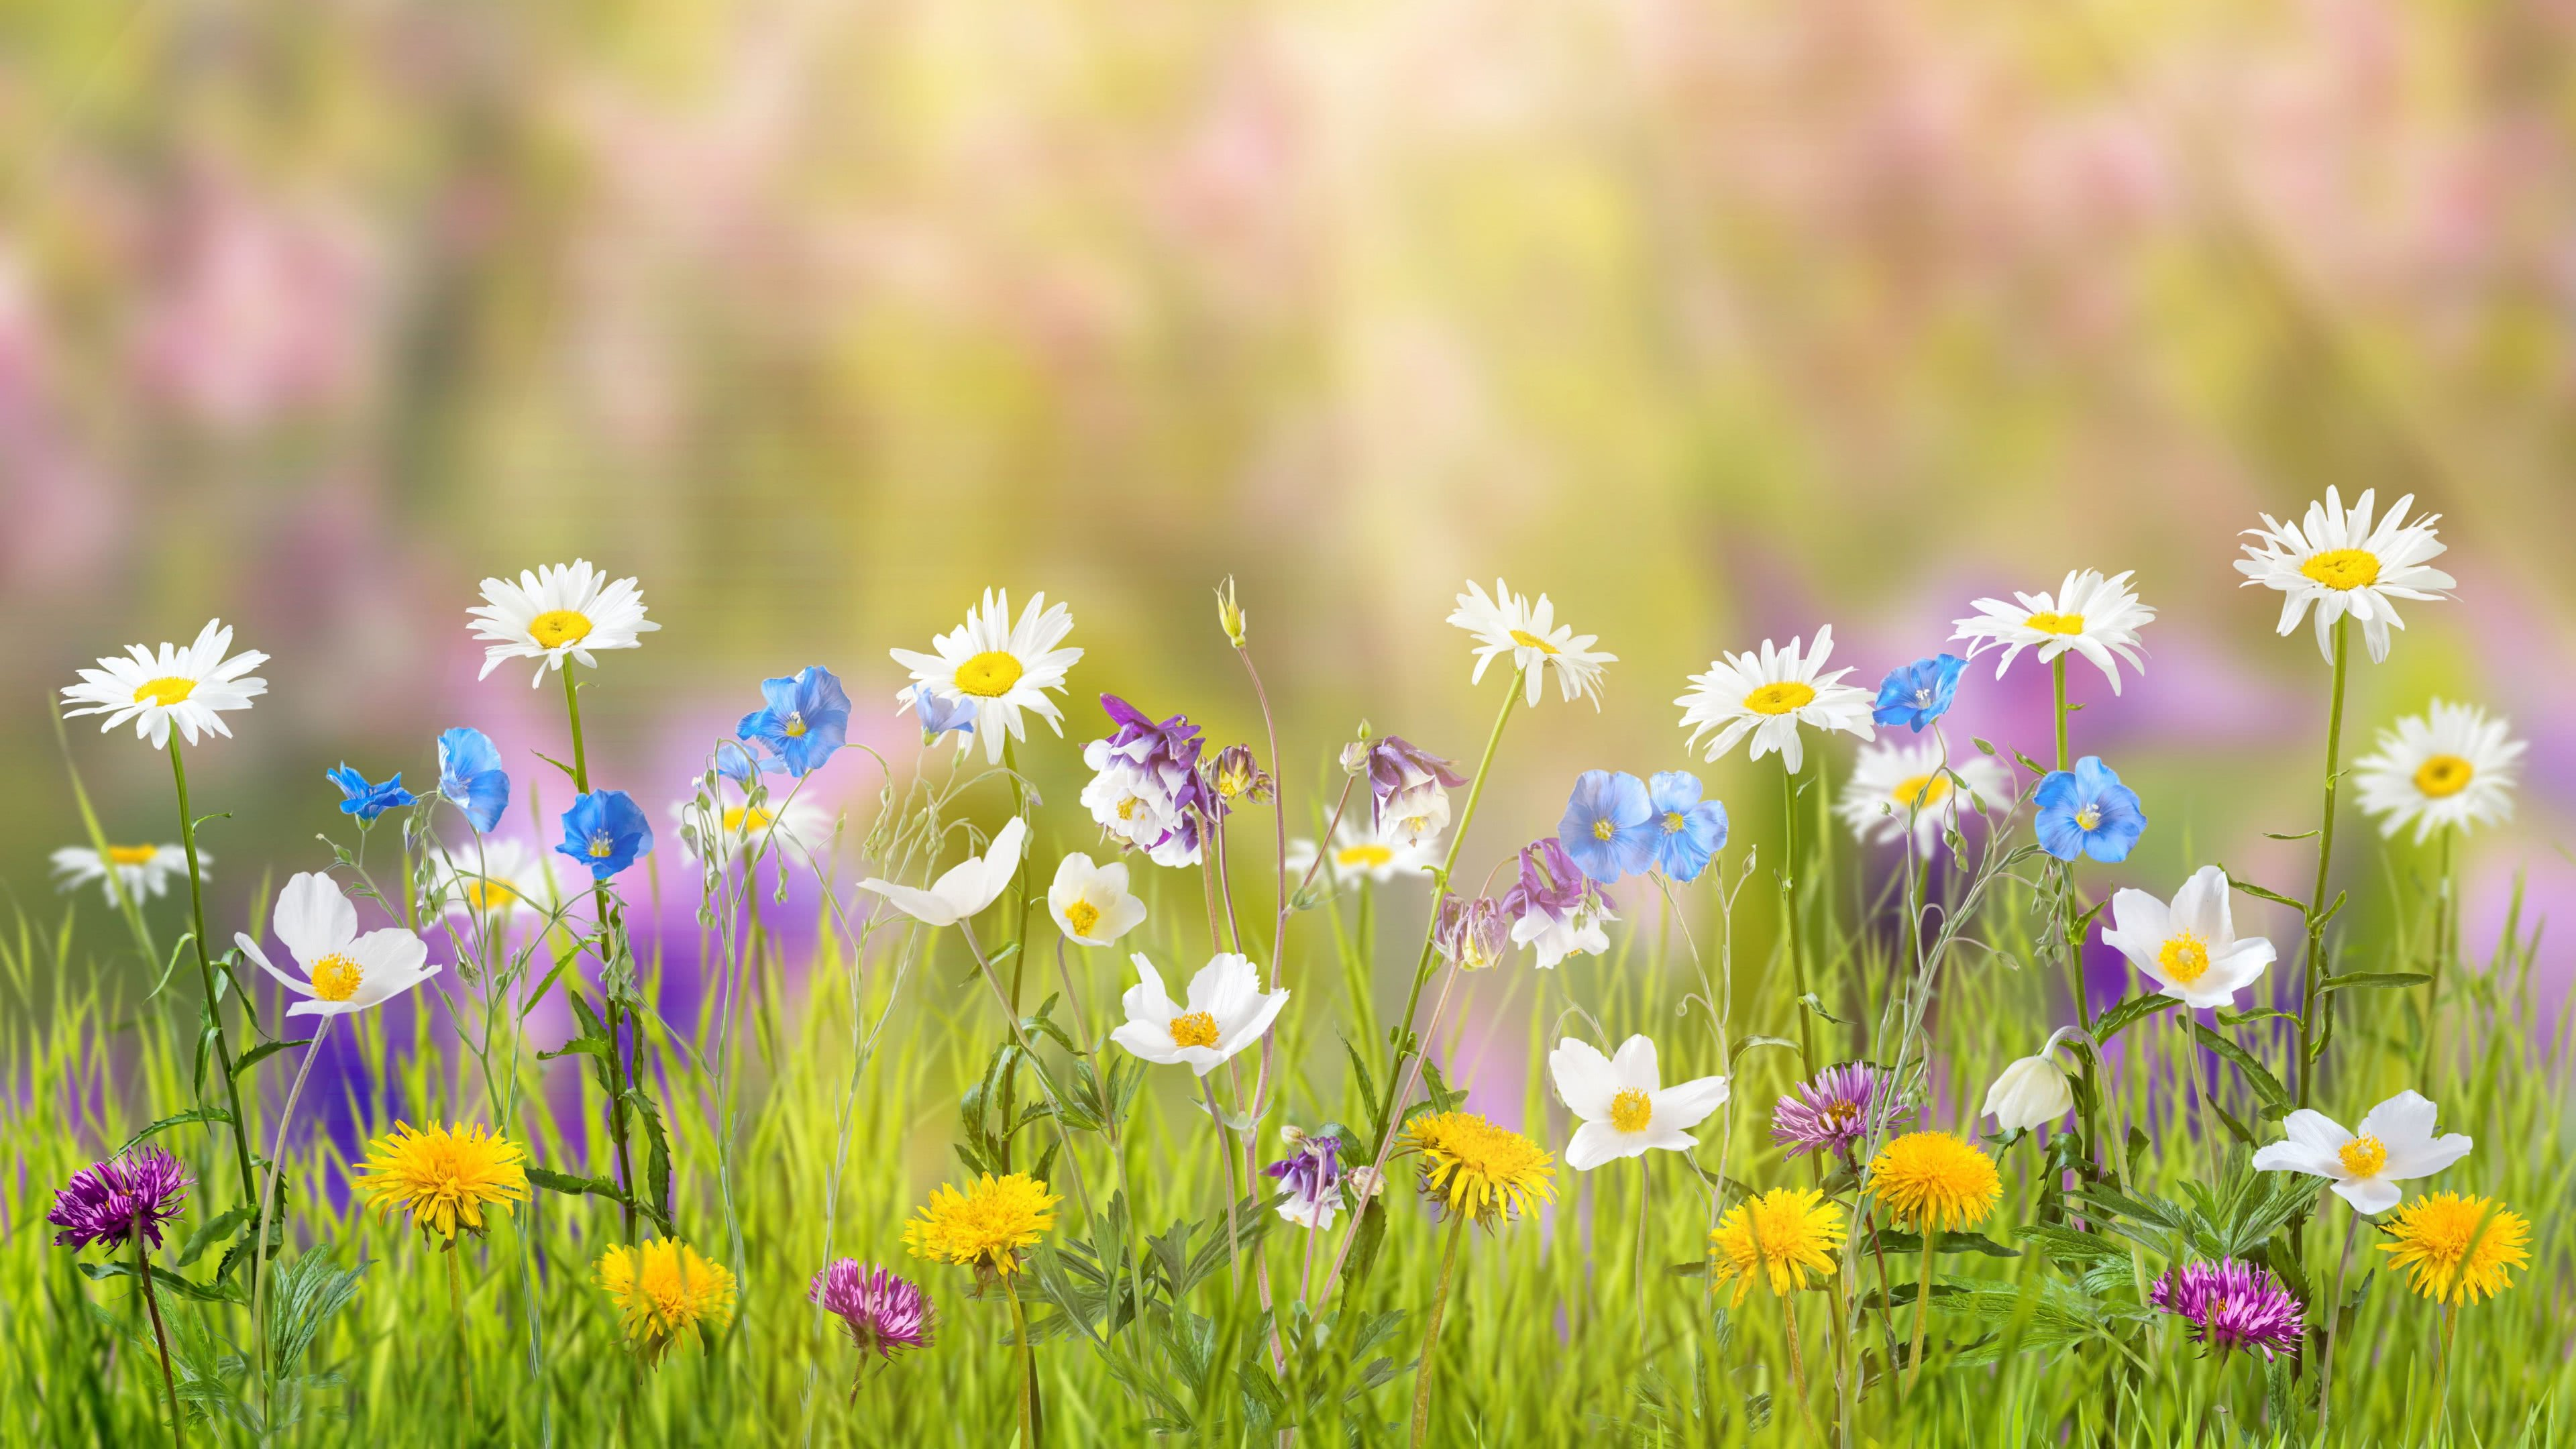 daisies and dandelions uhd 4k wallpaper